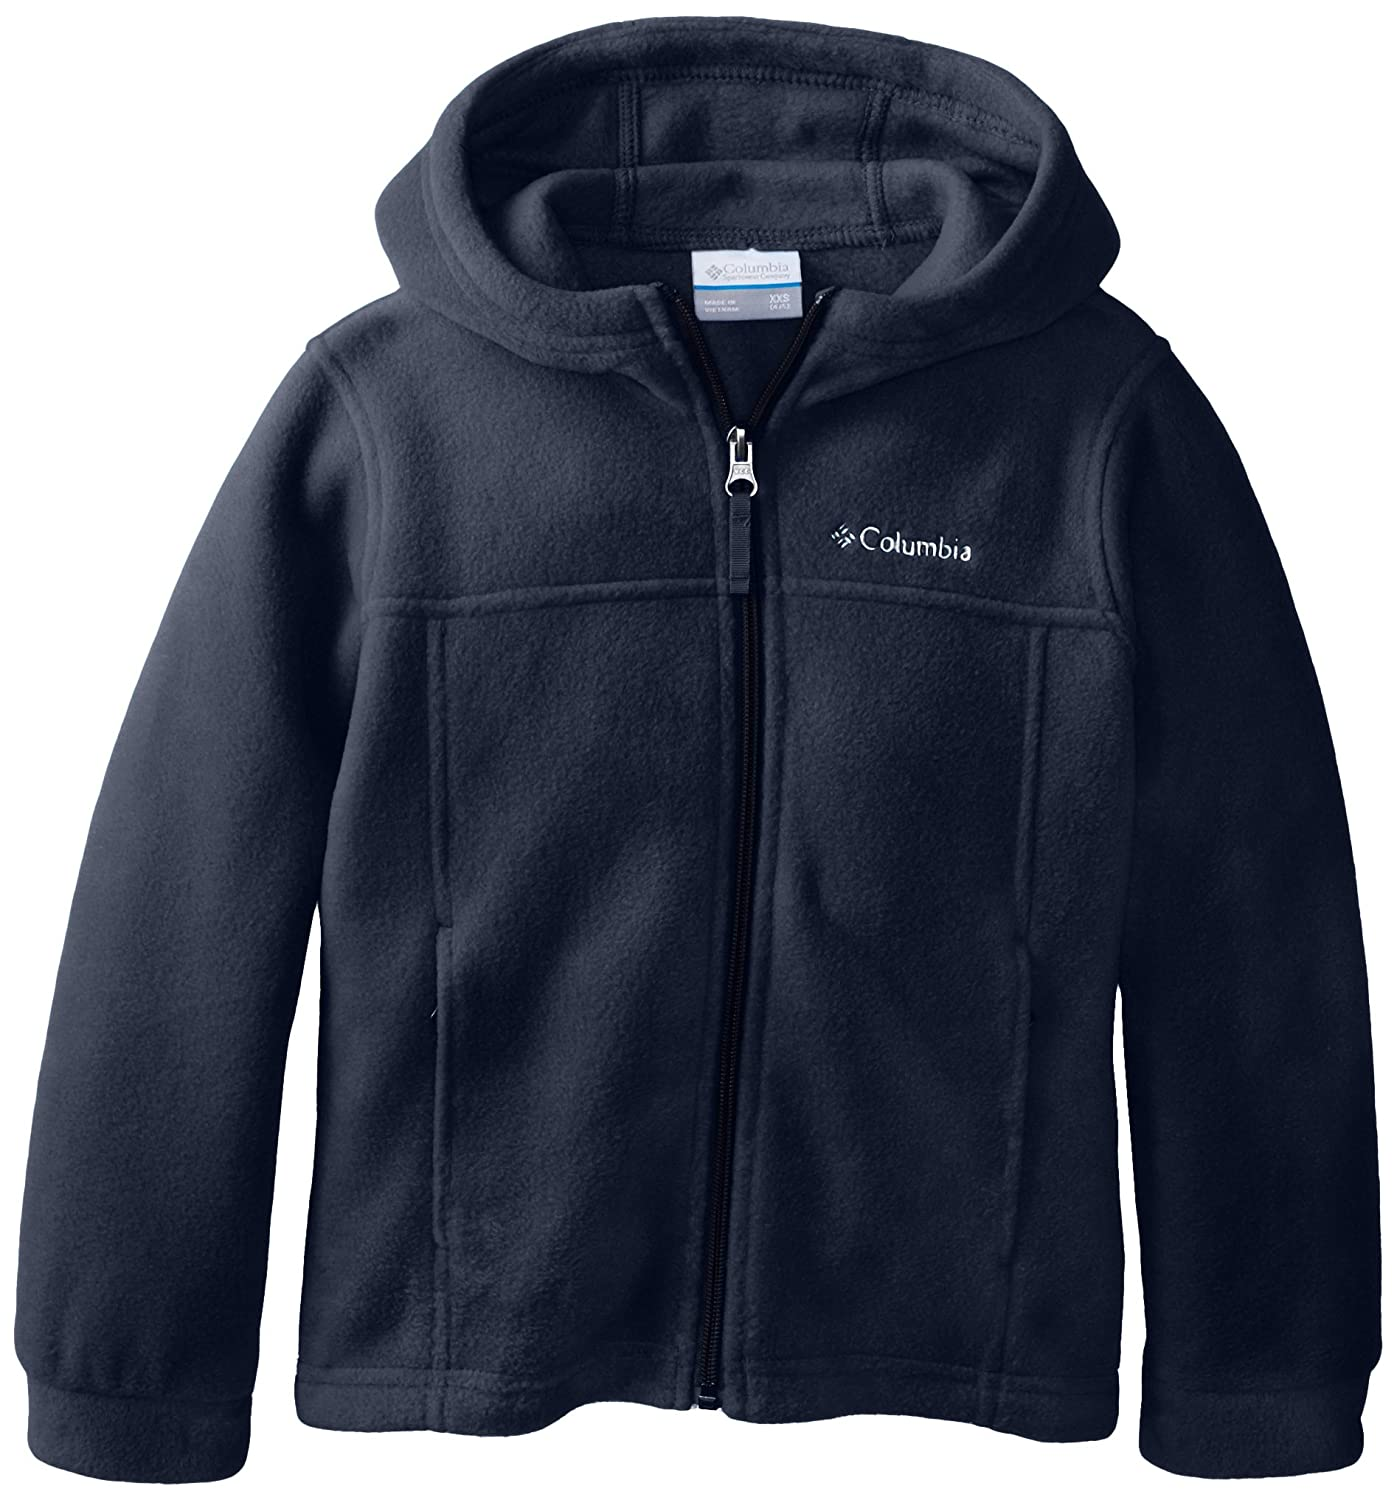 Columbia Boys' Steens II Fleece Hoodie Jacket WB6024